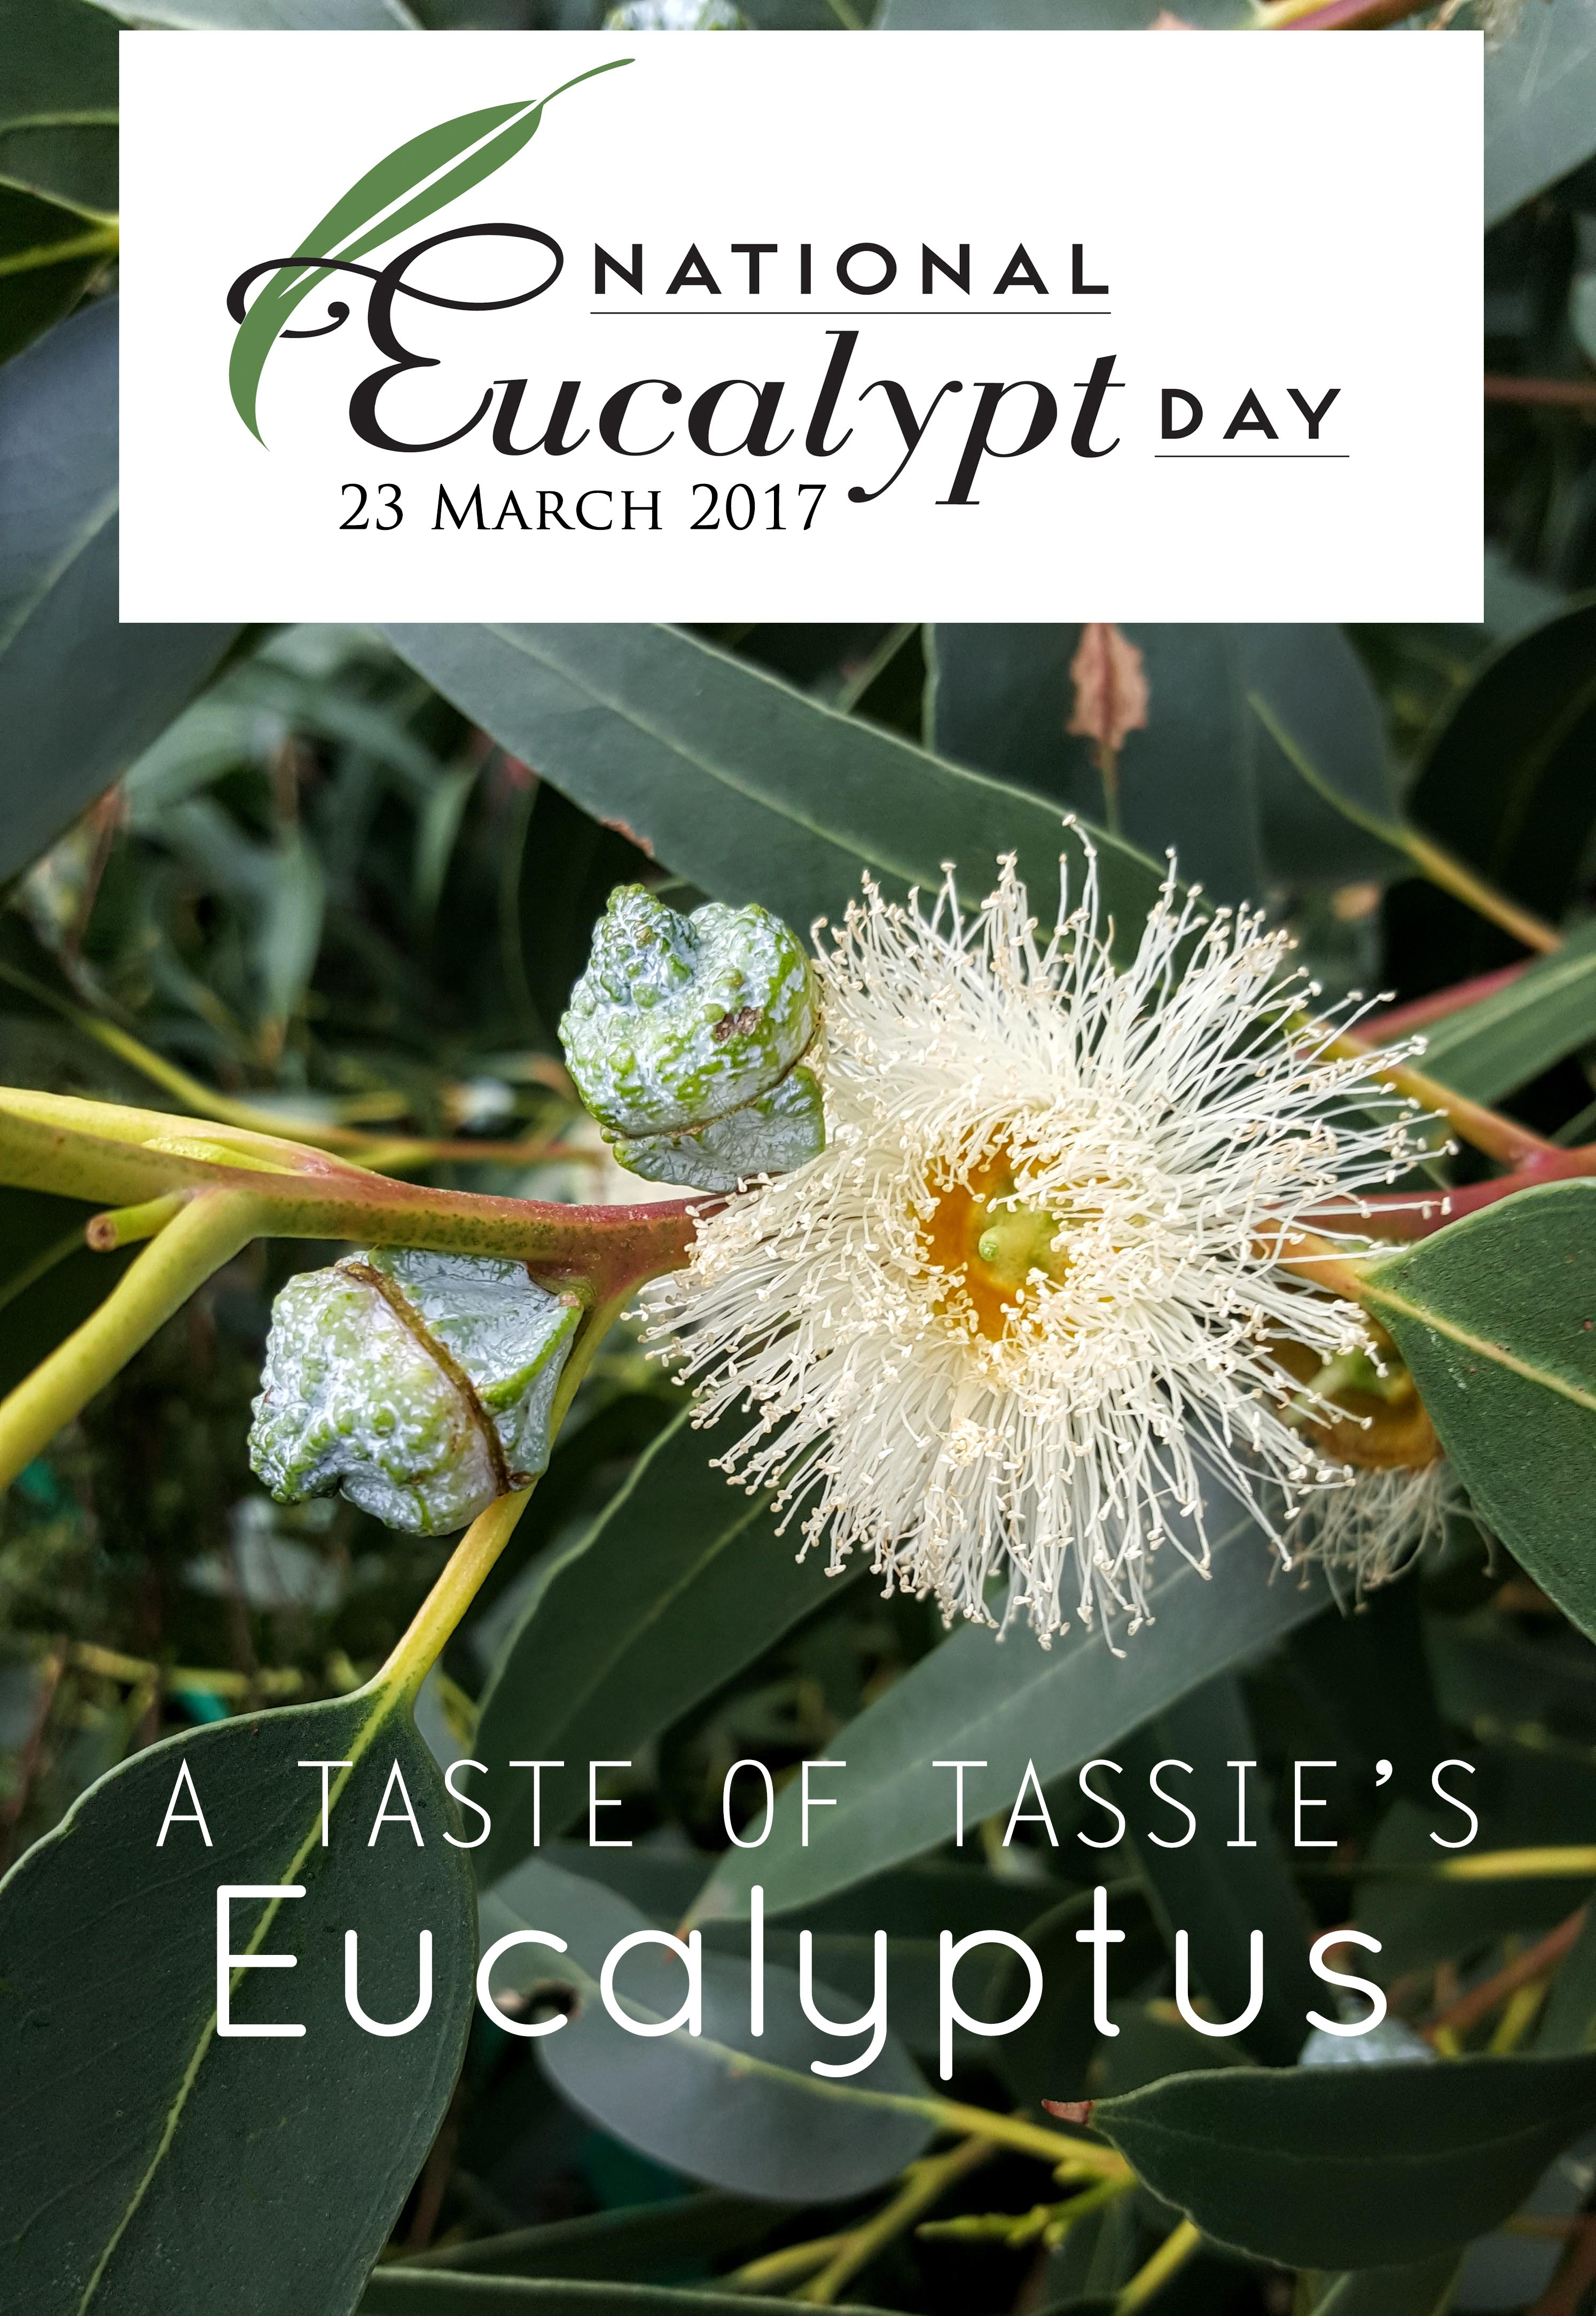 March the 23rd is National Eucalyptus Day